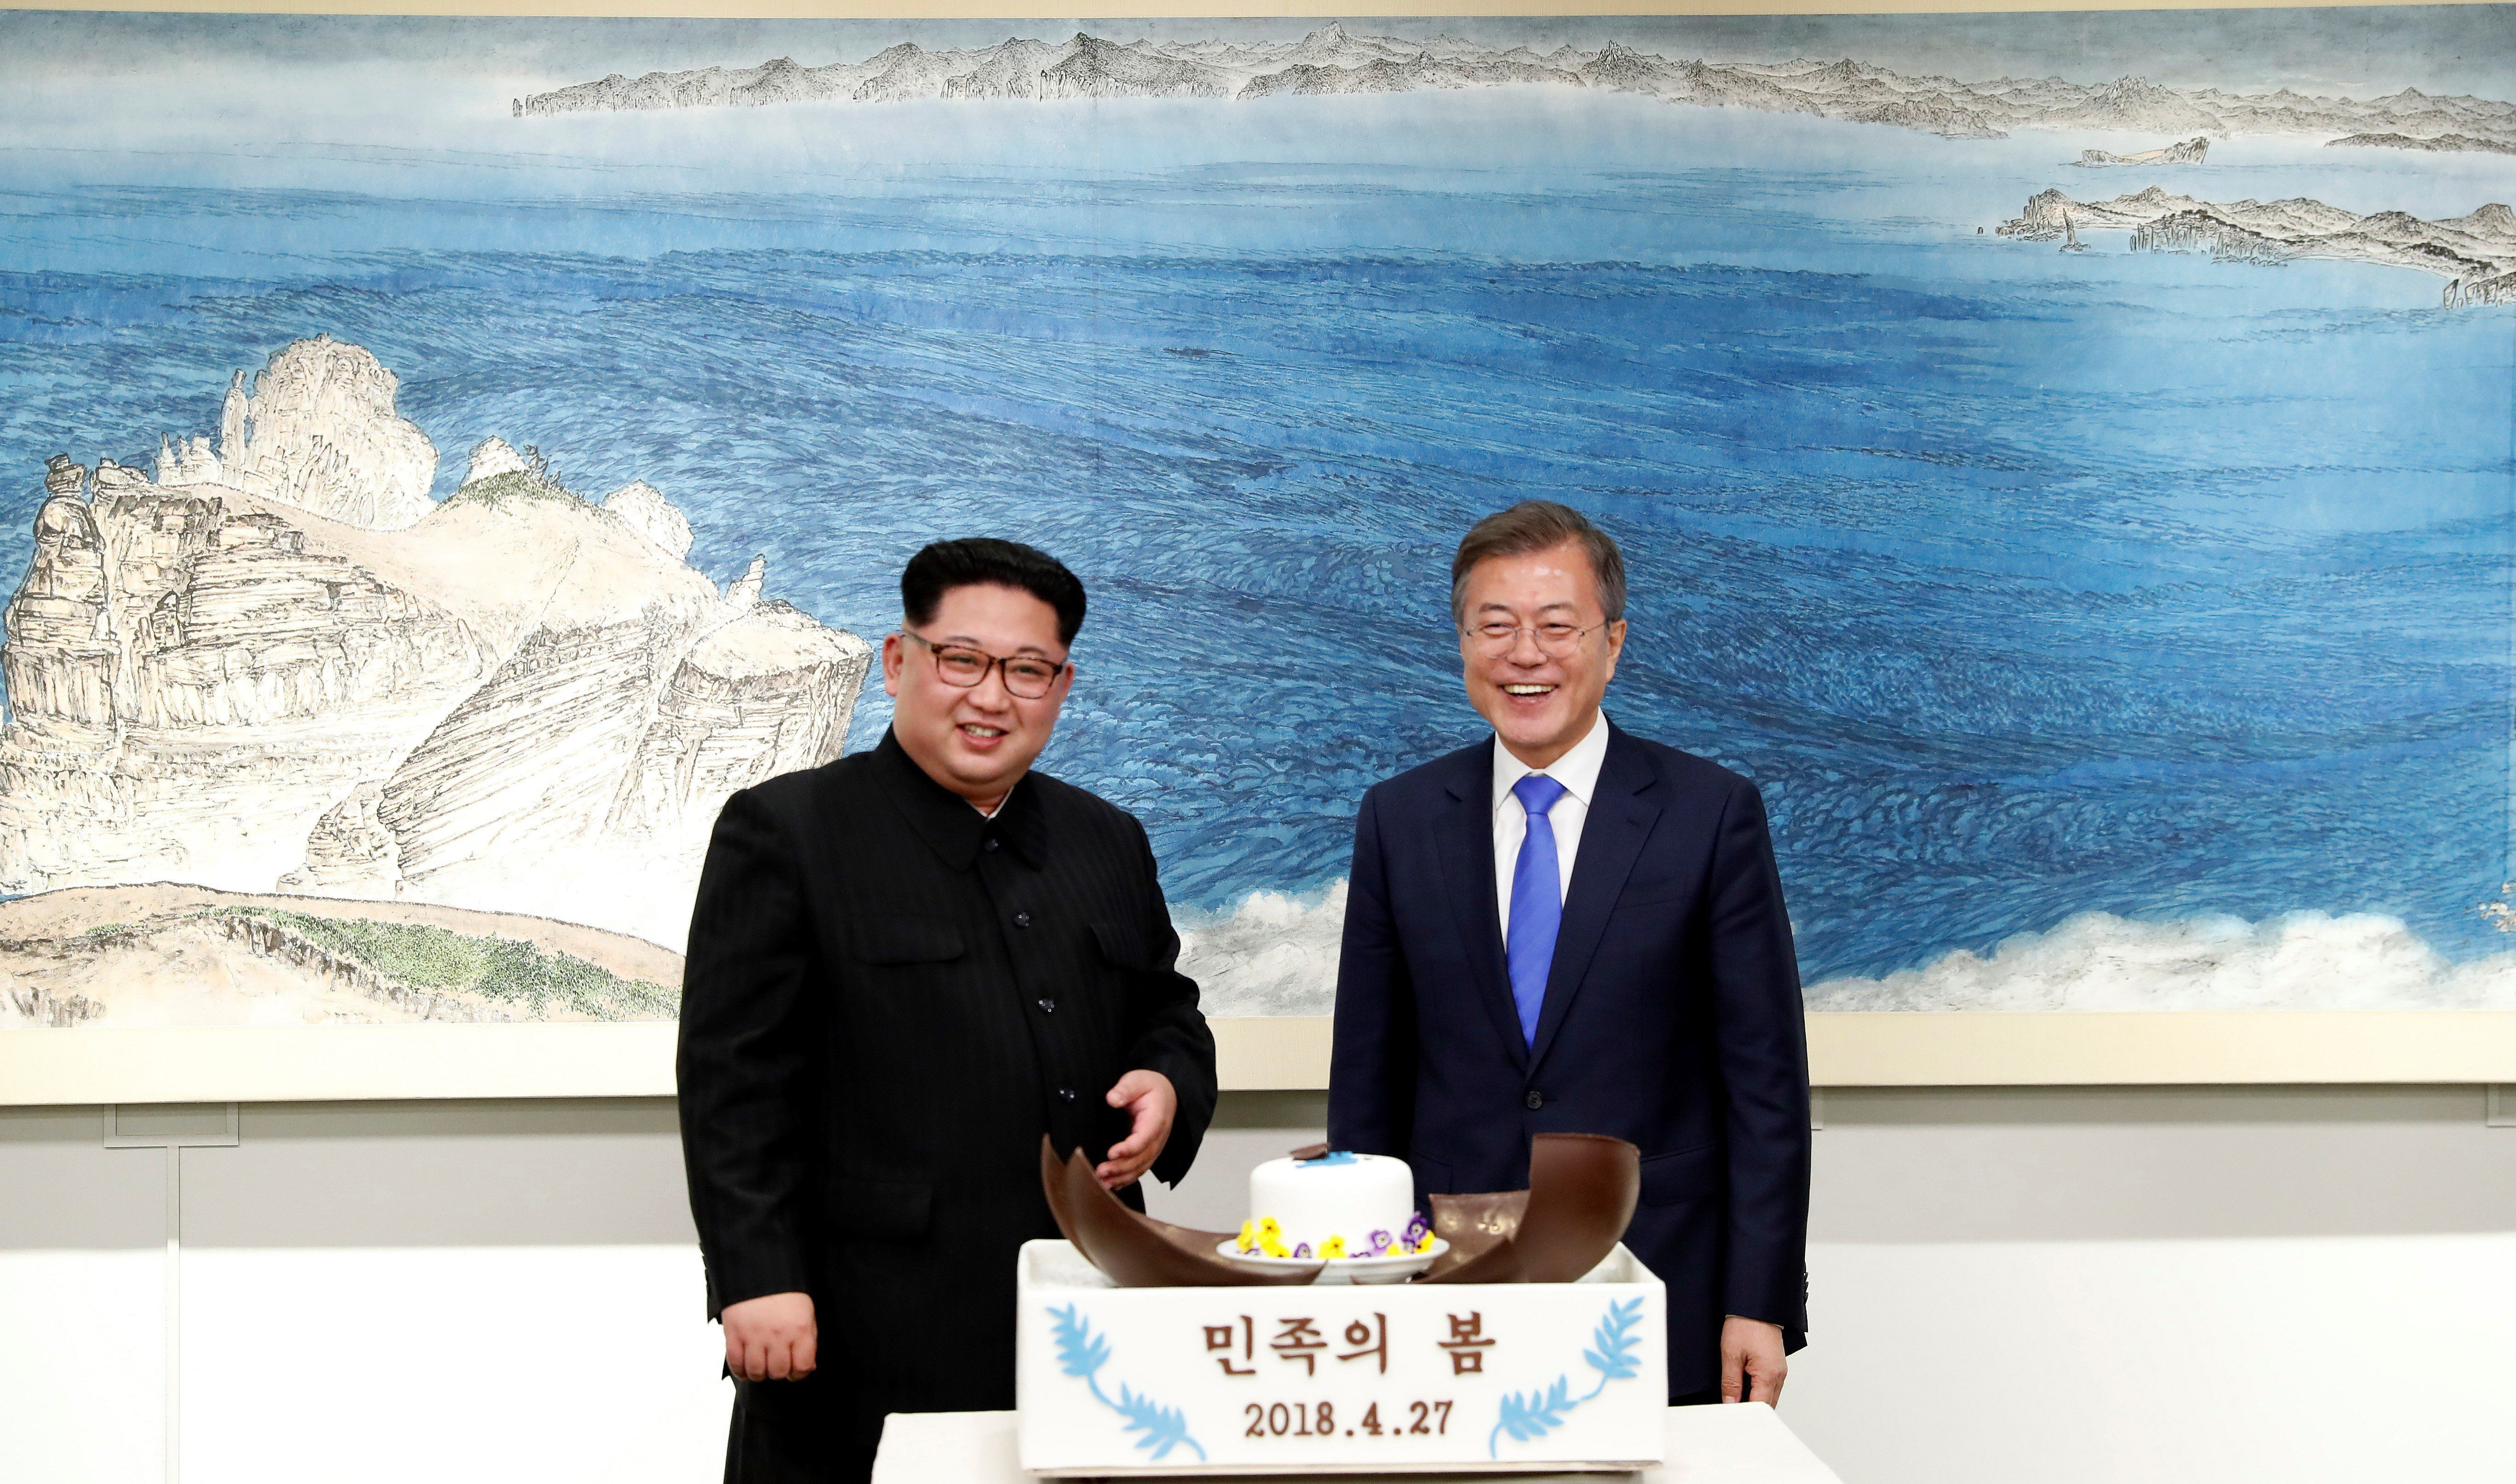 SEOUL, SOUTH KOREA - APRIL 27: South Korean president, Moon Jae-in (R) and North Korean leader Kim Jong-un (L) attend Dinner banquet in the Peace House building at the southern side of the truce village of Panmunjom, South Korea on April 27, 2018. Kim Jong-un is the first North Korean leader to enter South Korea since the end of the Korean War in 1953. (Photo by INTER-KOREAN SUMMIT / POOL/Anadolu Agency/Getty Images)